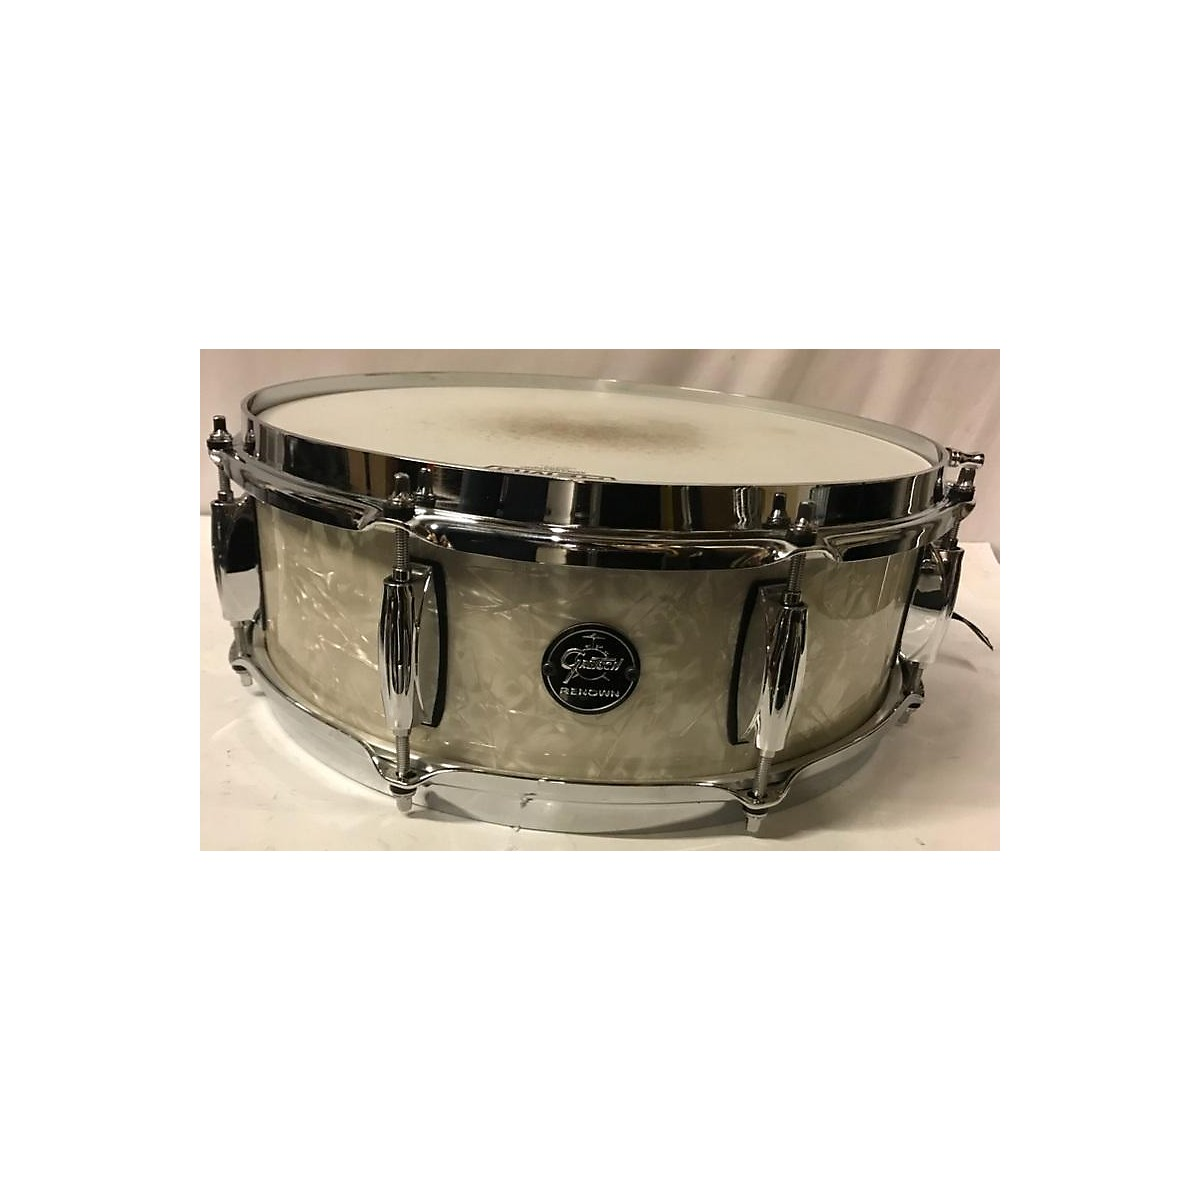 Gretsch Drums 4.5X14 Renown 57 Snare Drum